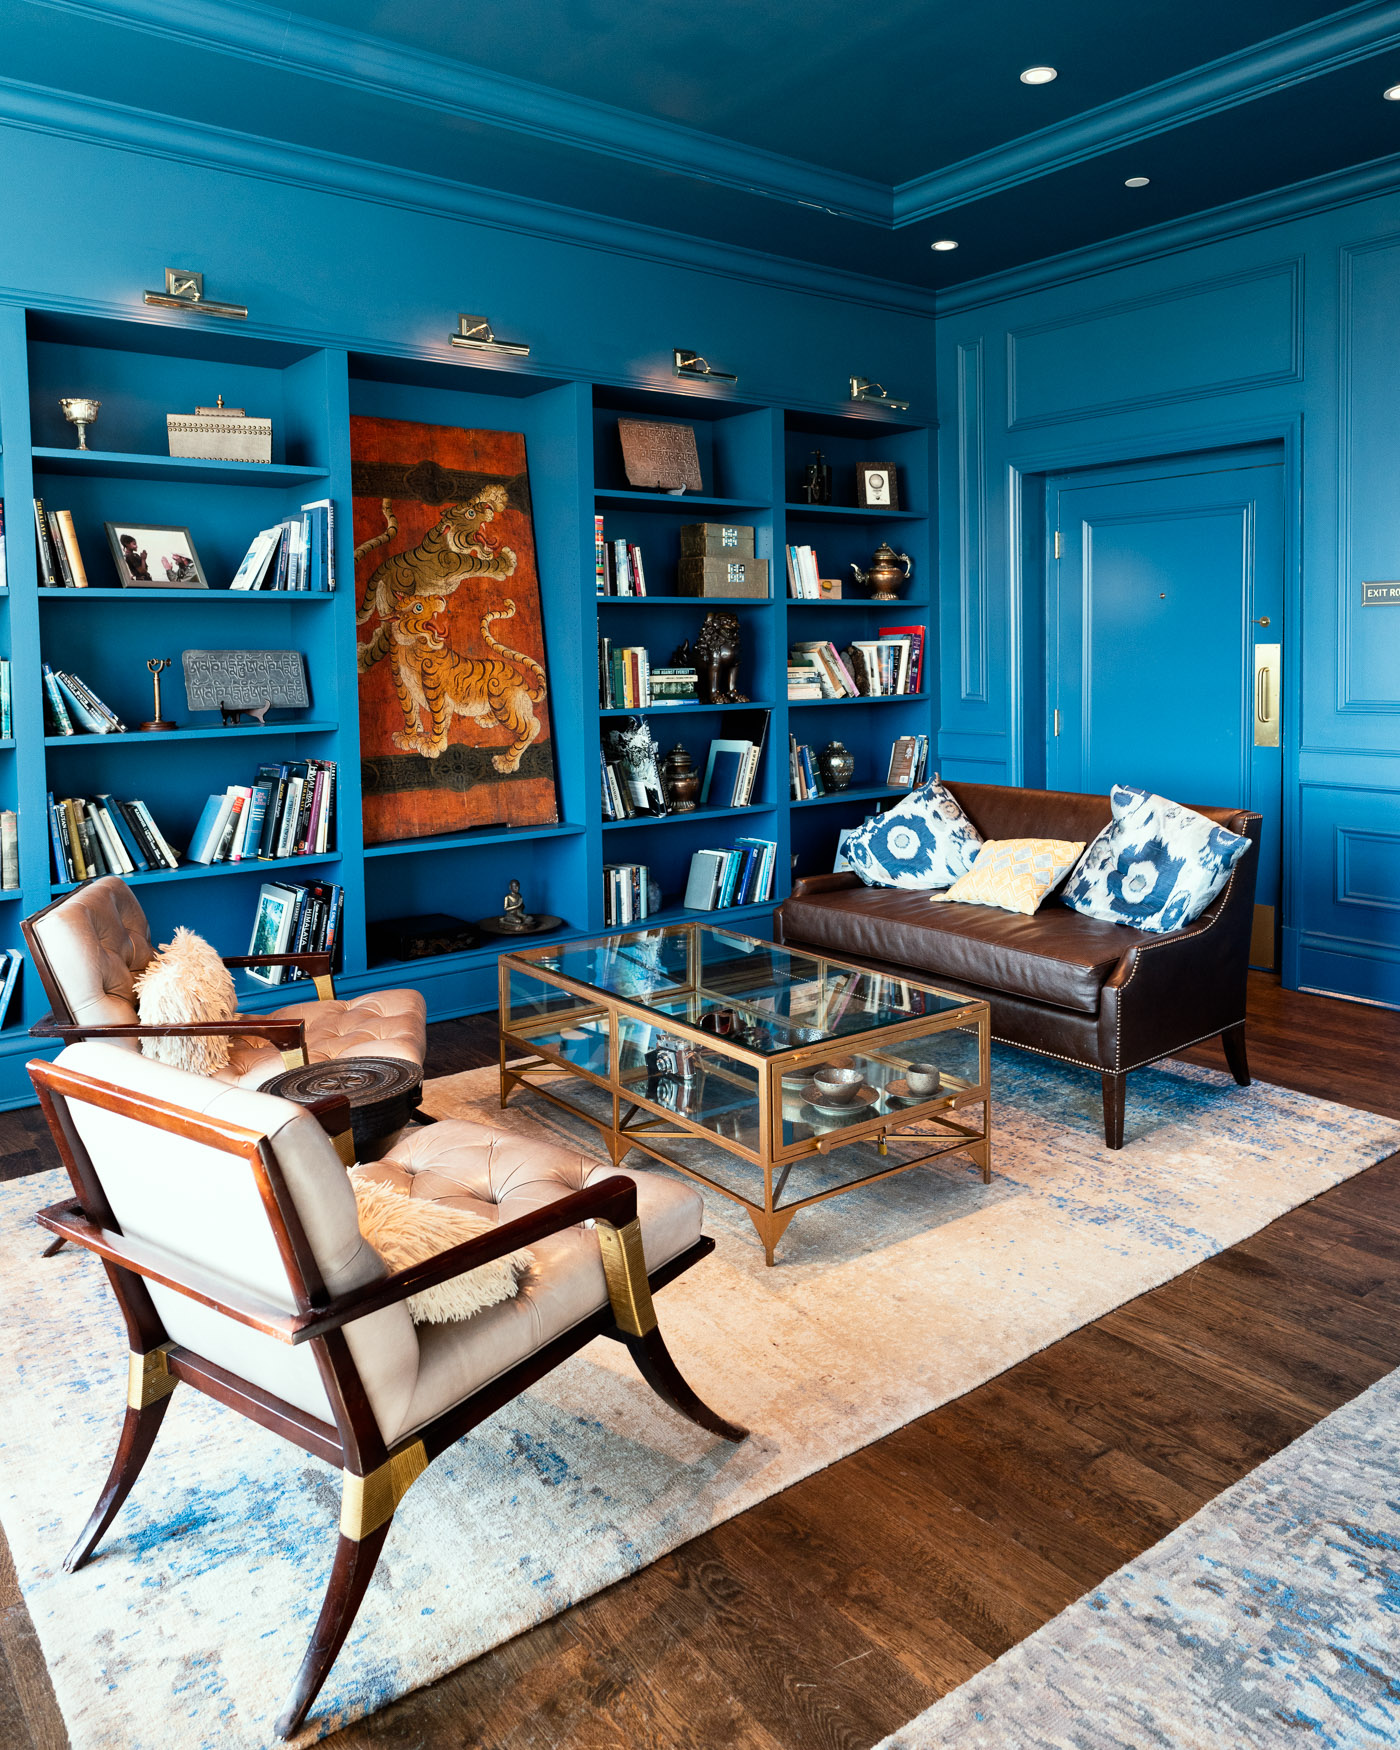 The blue library, is a perfect spot to work or relax, day or night.